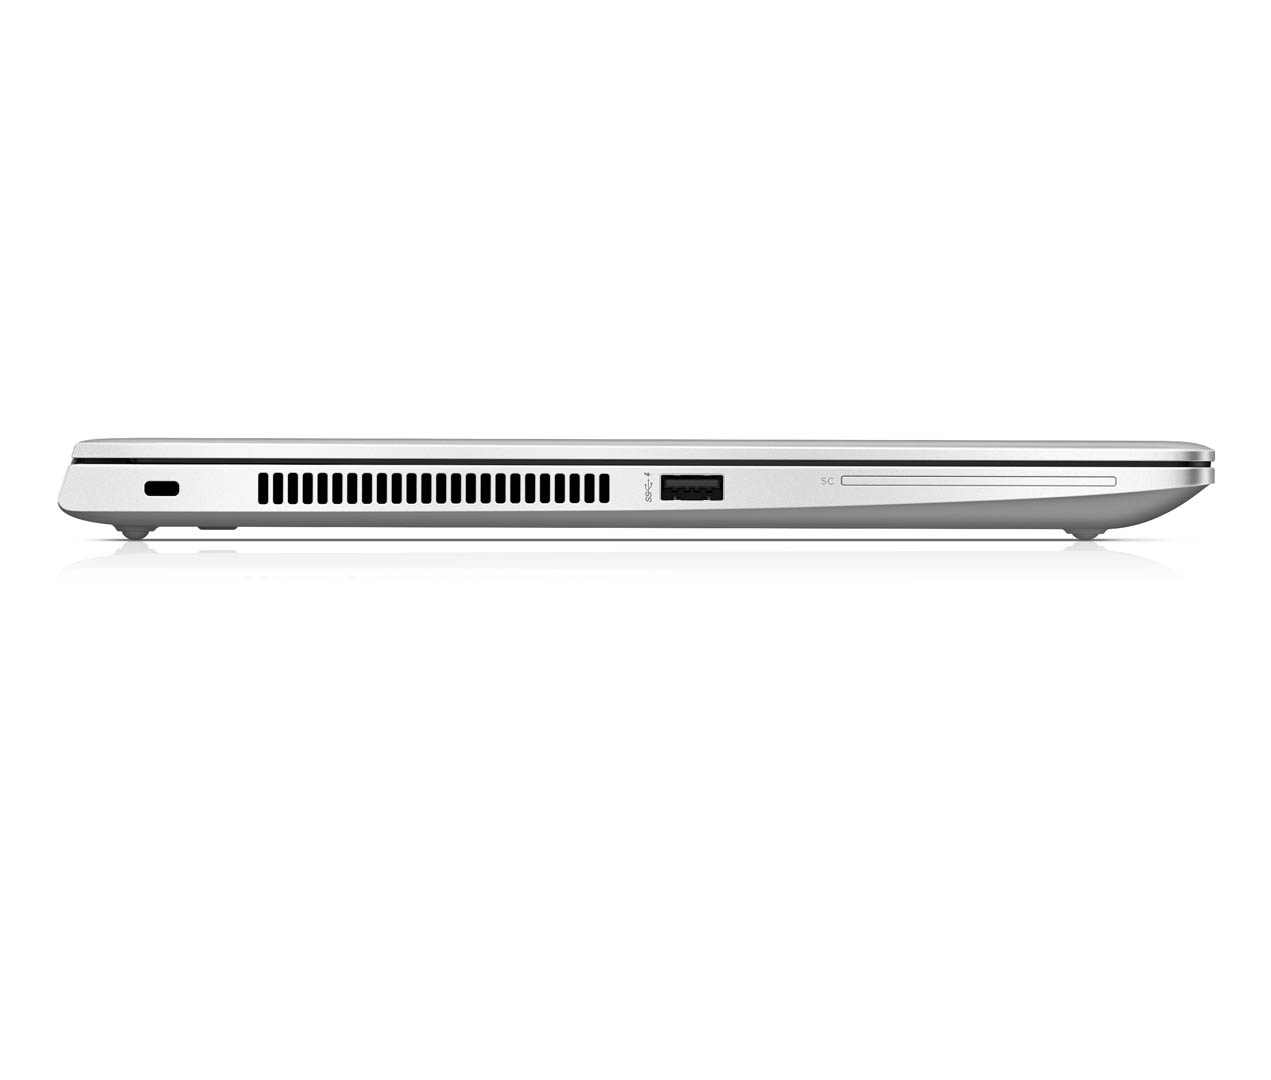 HP annuncia gli EliteBook 700 G6 e l'HP mt45 Mobile Thin Client 13